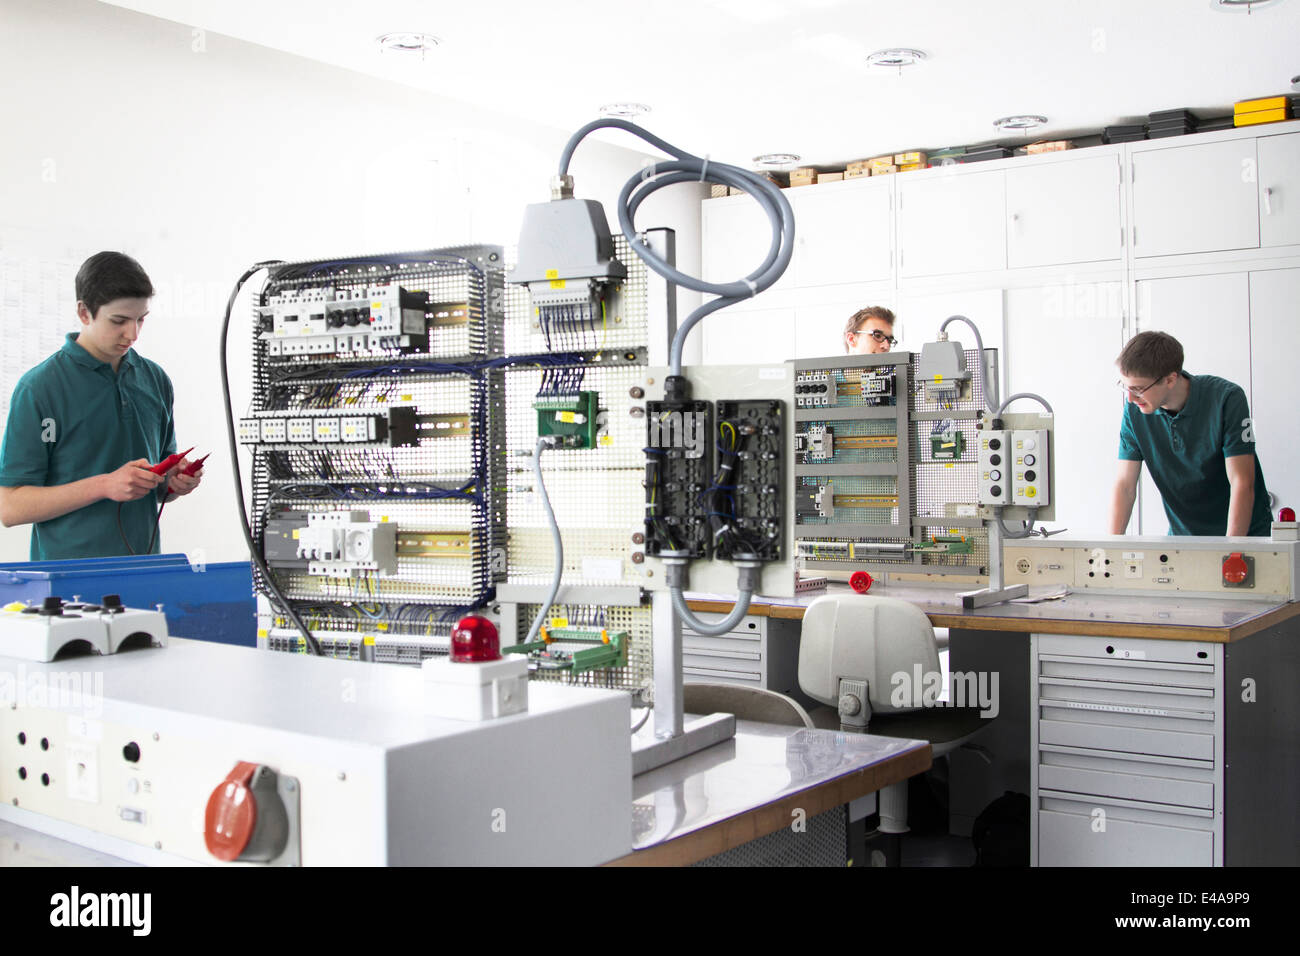 Three electronic apprentices at workshop - Stock Image